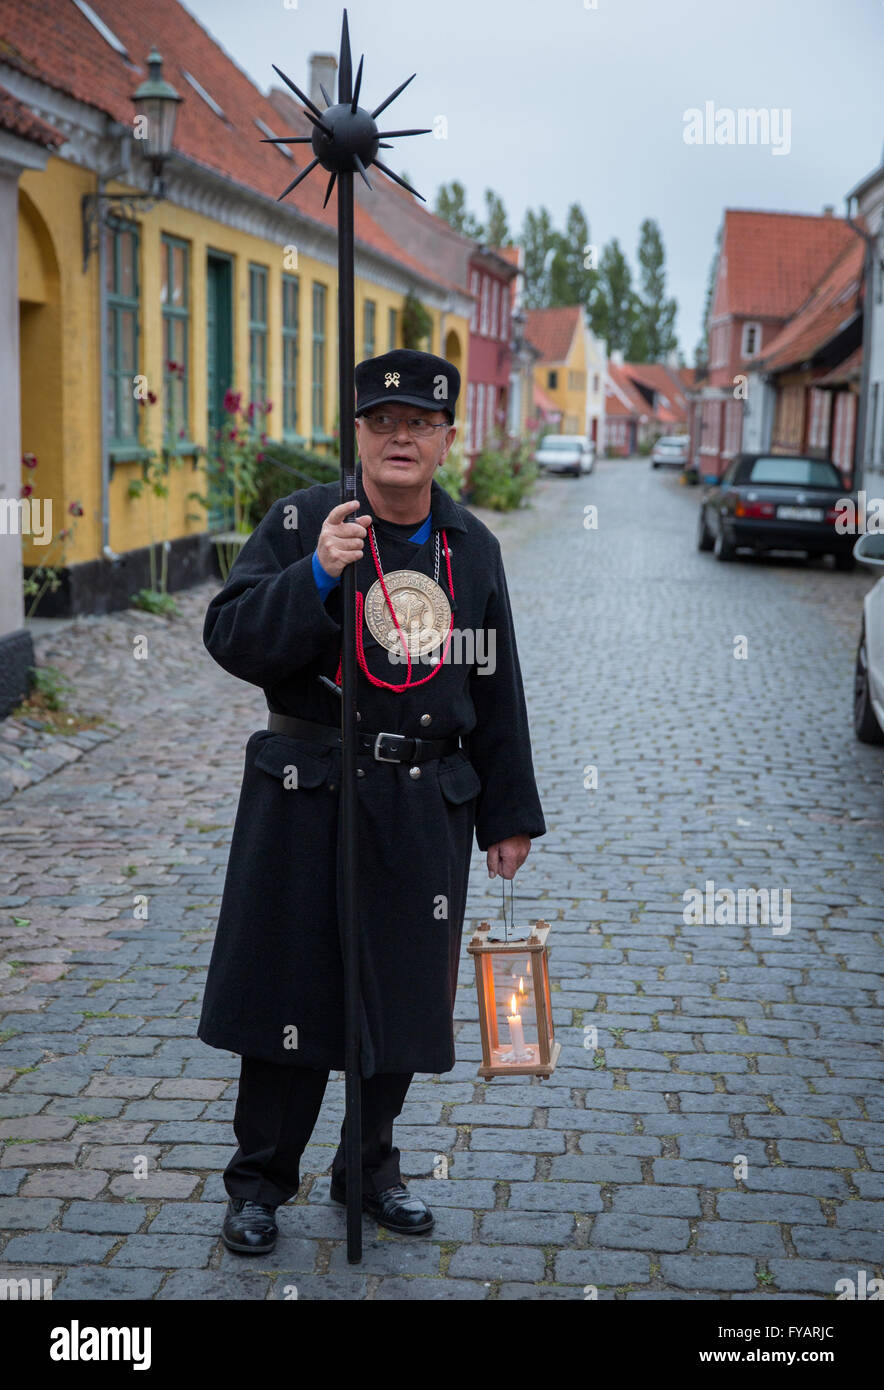 The night watchman tour guide in Ærøskøbing, Denmark - Stock Image